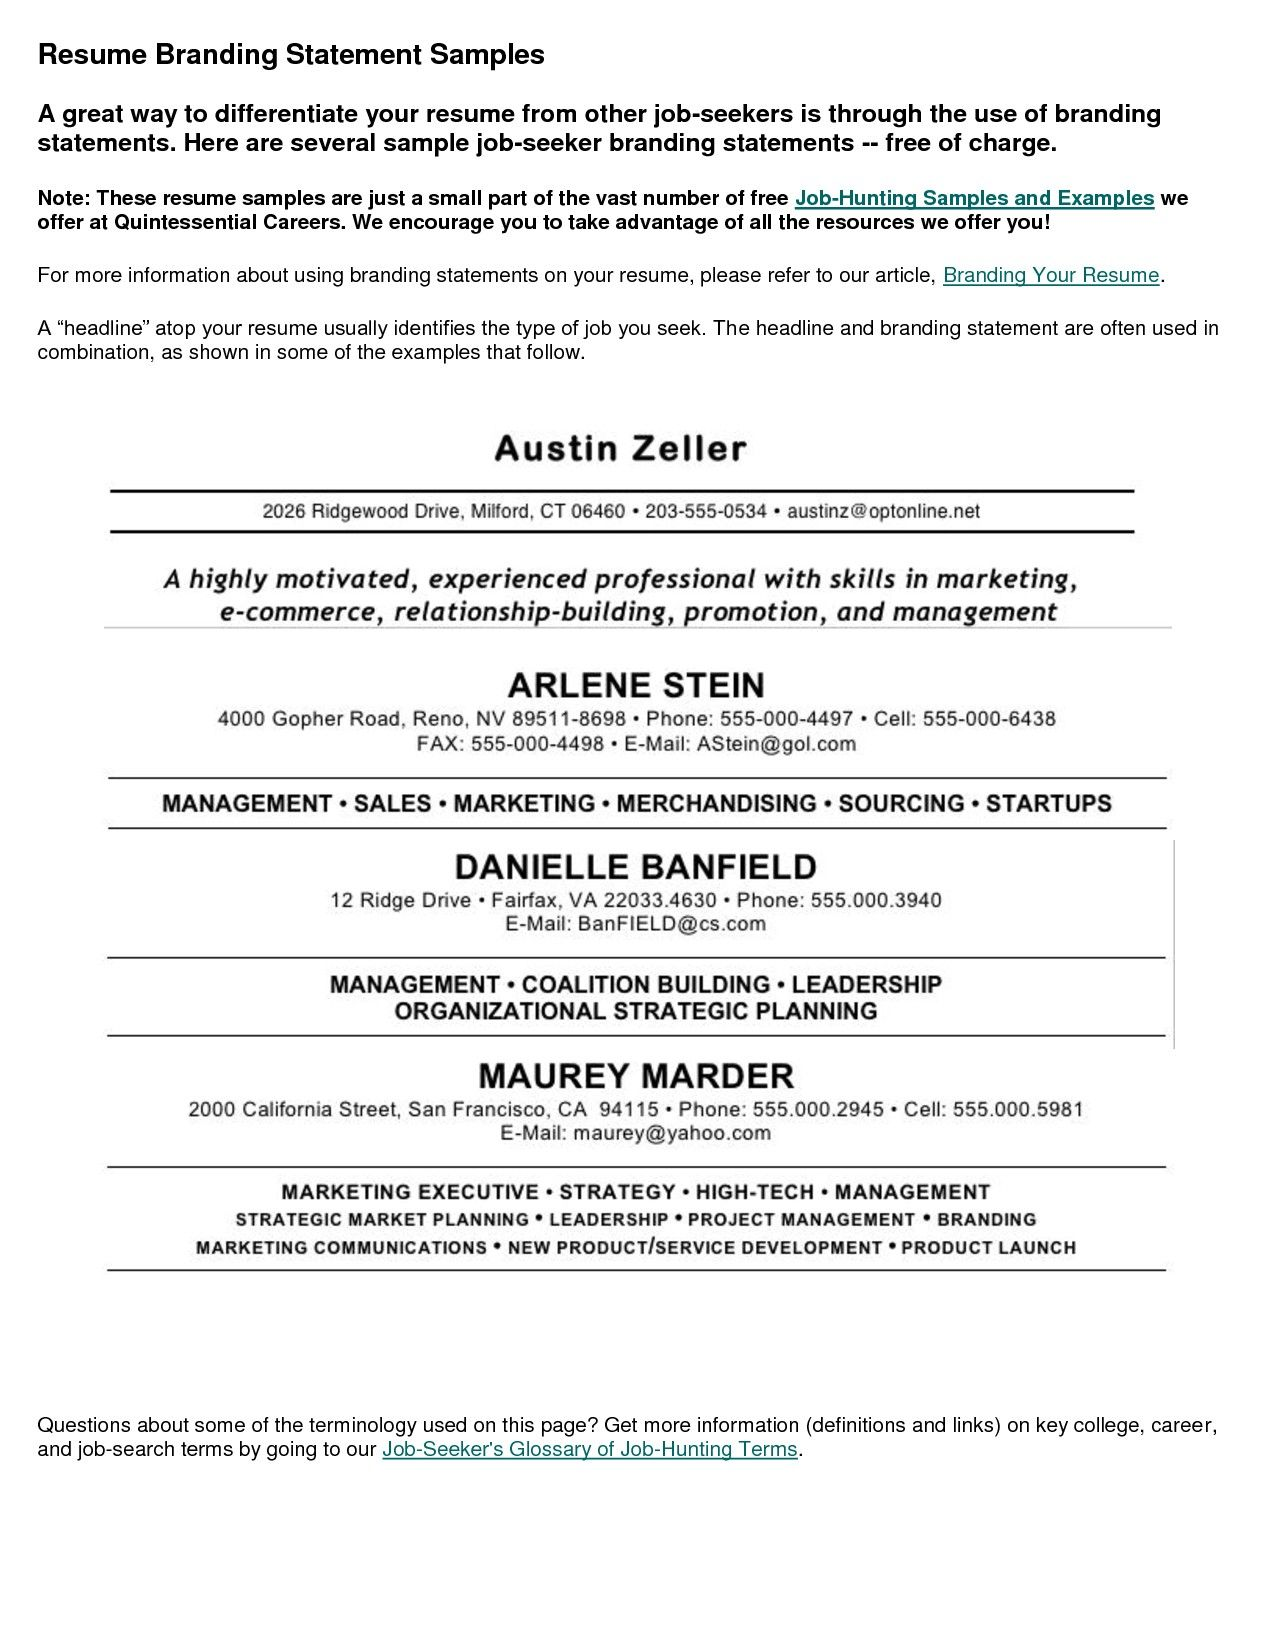 free job resume sample - Free Resume Examples For Jobs